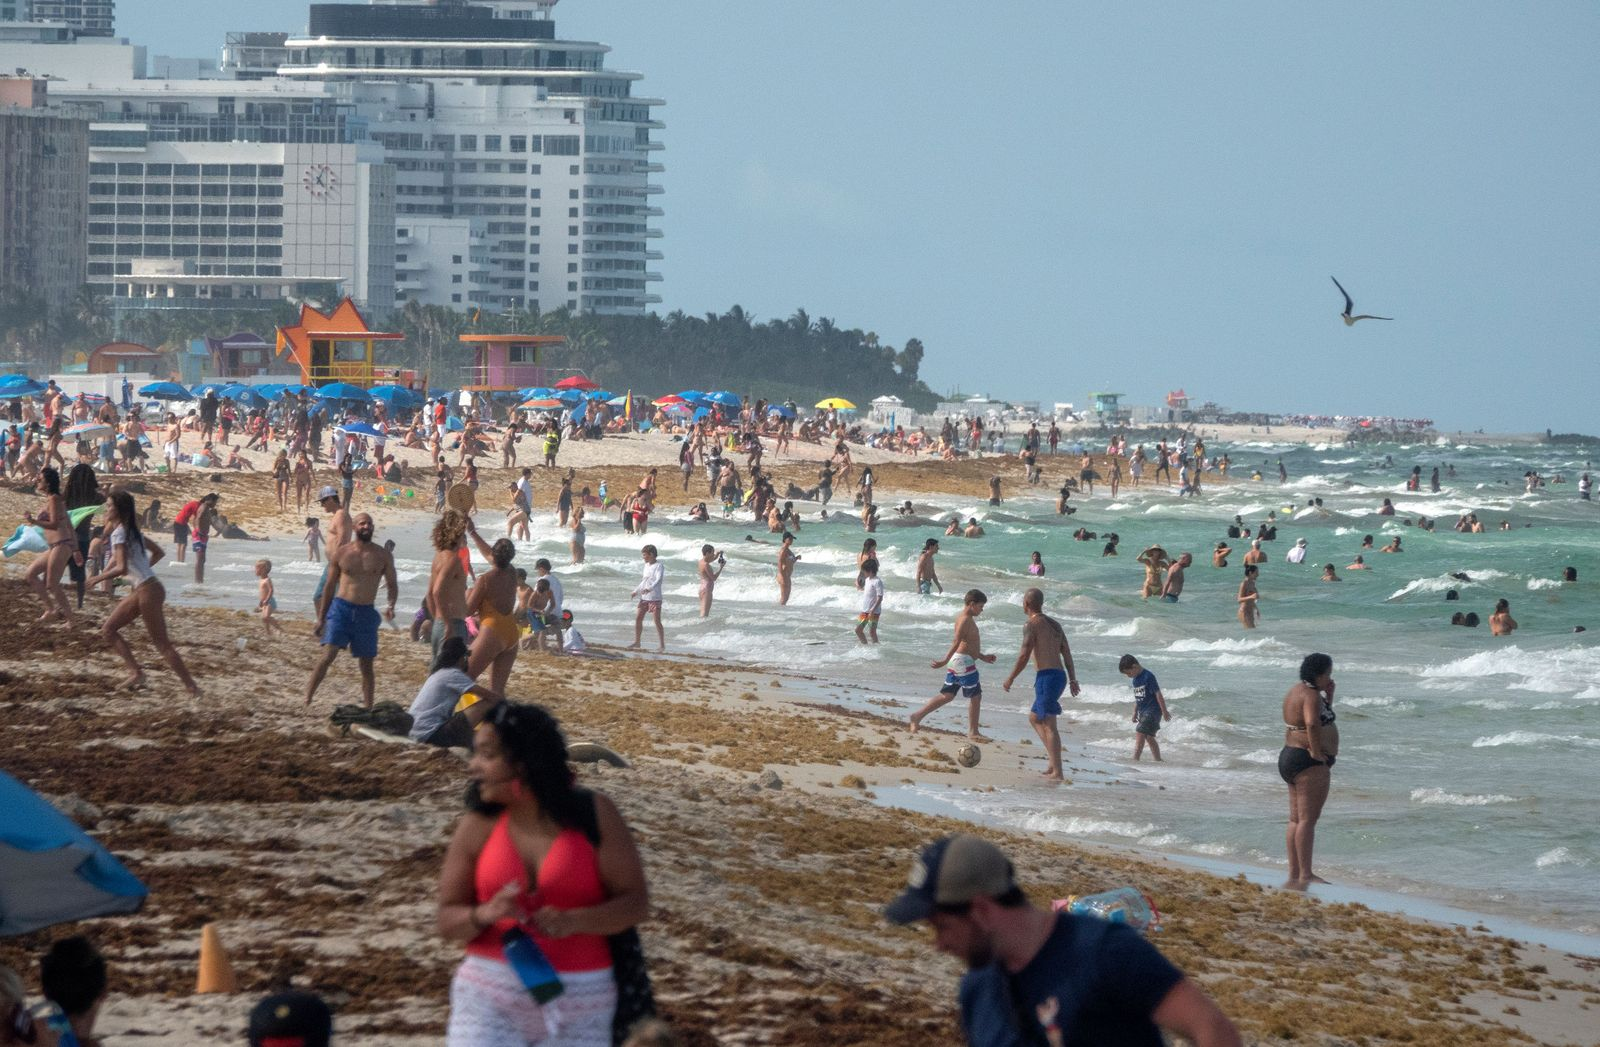 Coronavirus in Miami, Miami Beach, USA - 26 Jun 2020